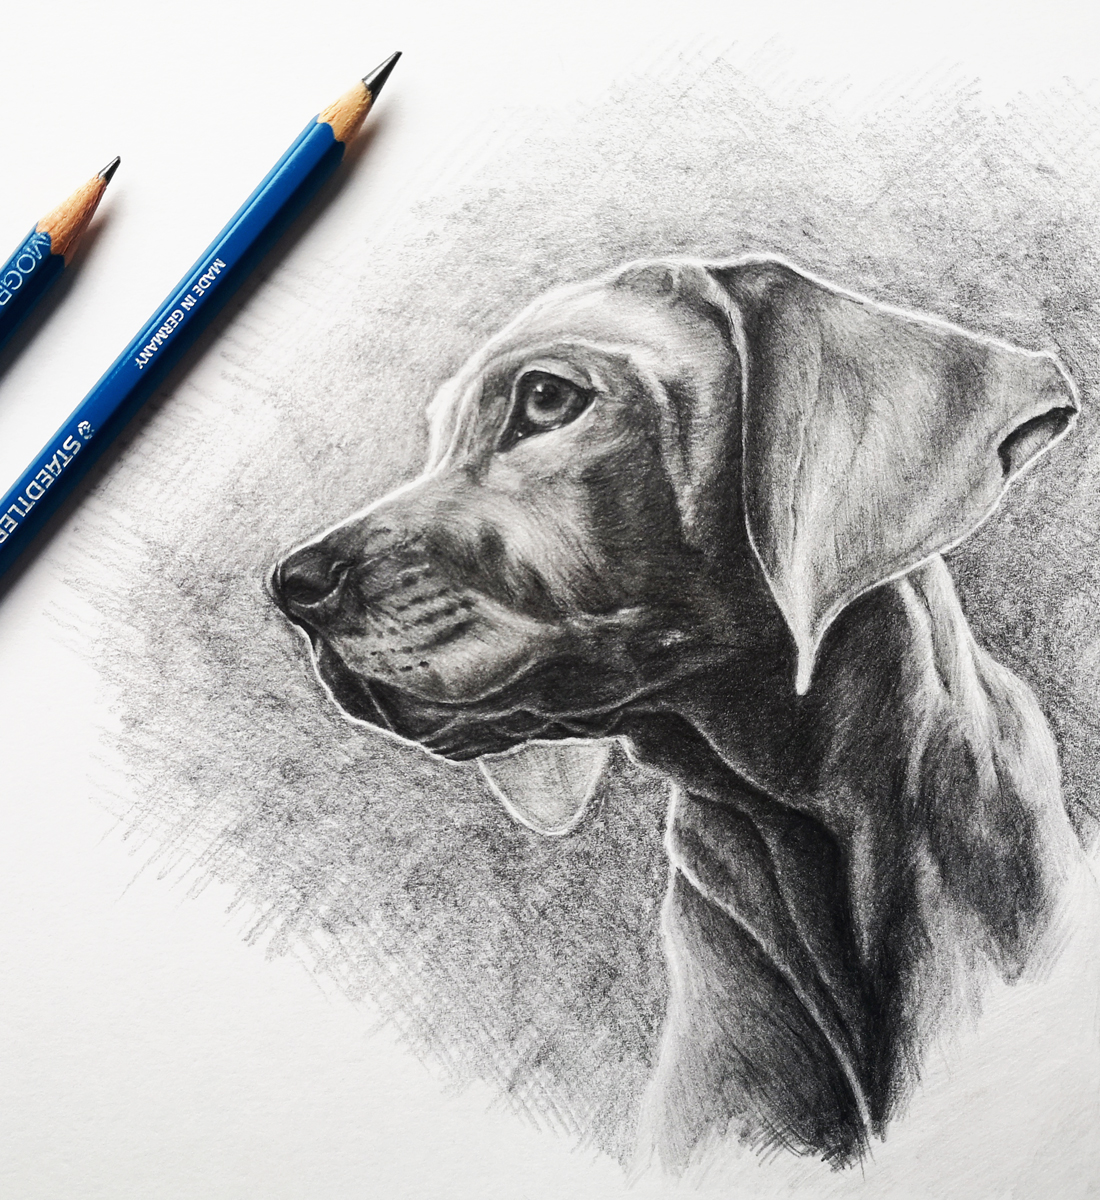 Learn to draw your own pets with Skillshare class, Pet Portraits 101